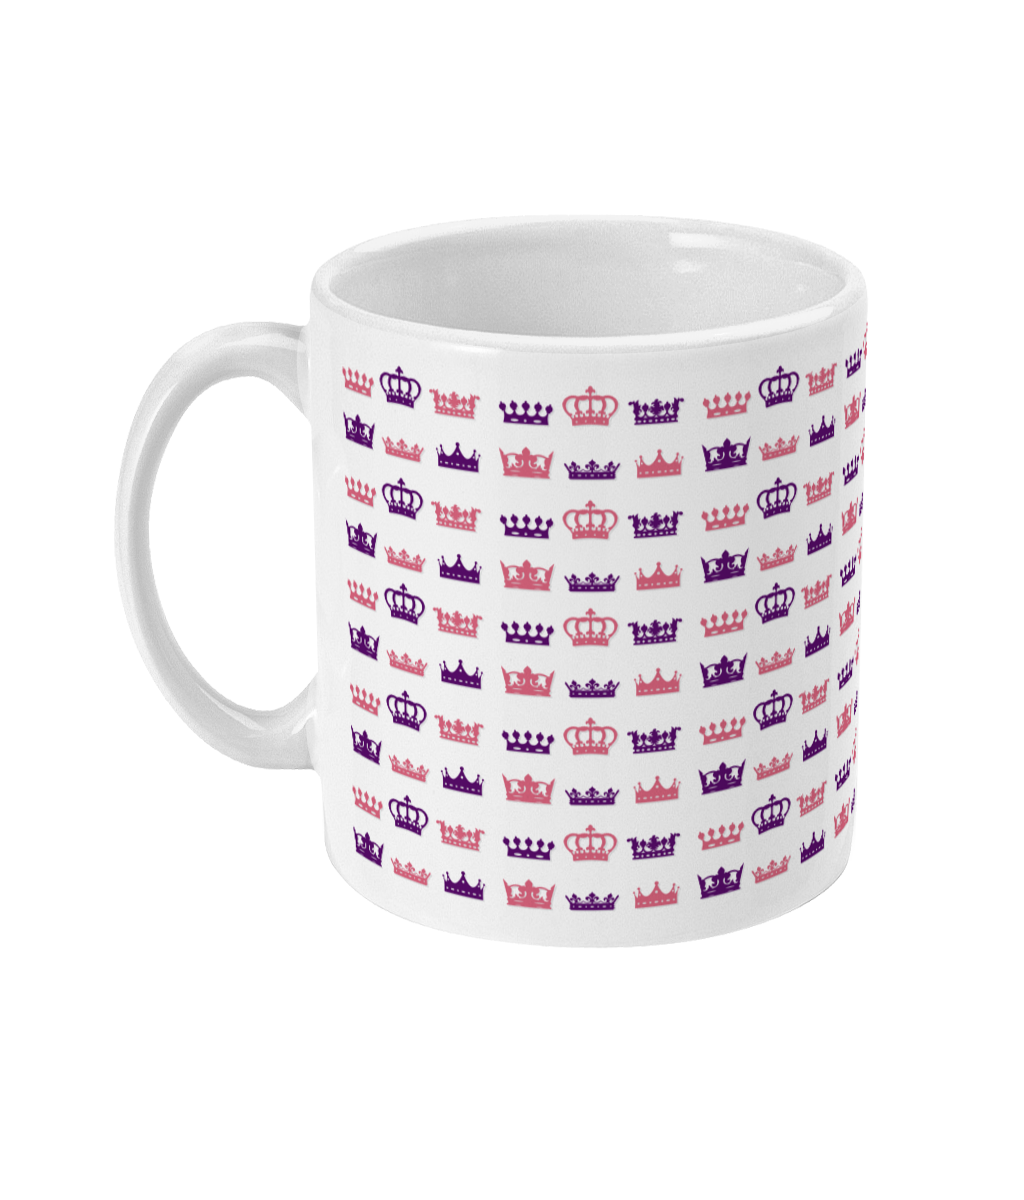 Replicate Royalty crowns mug